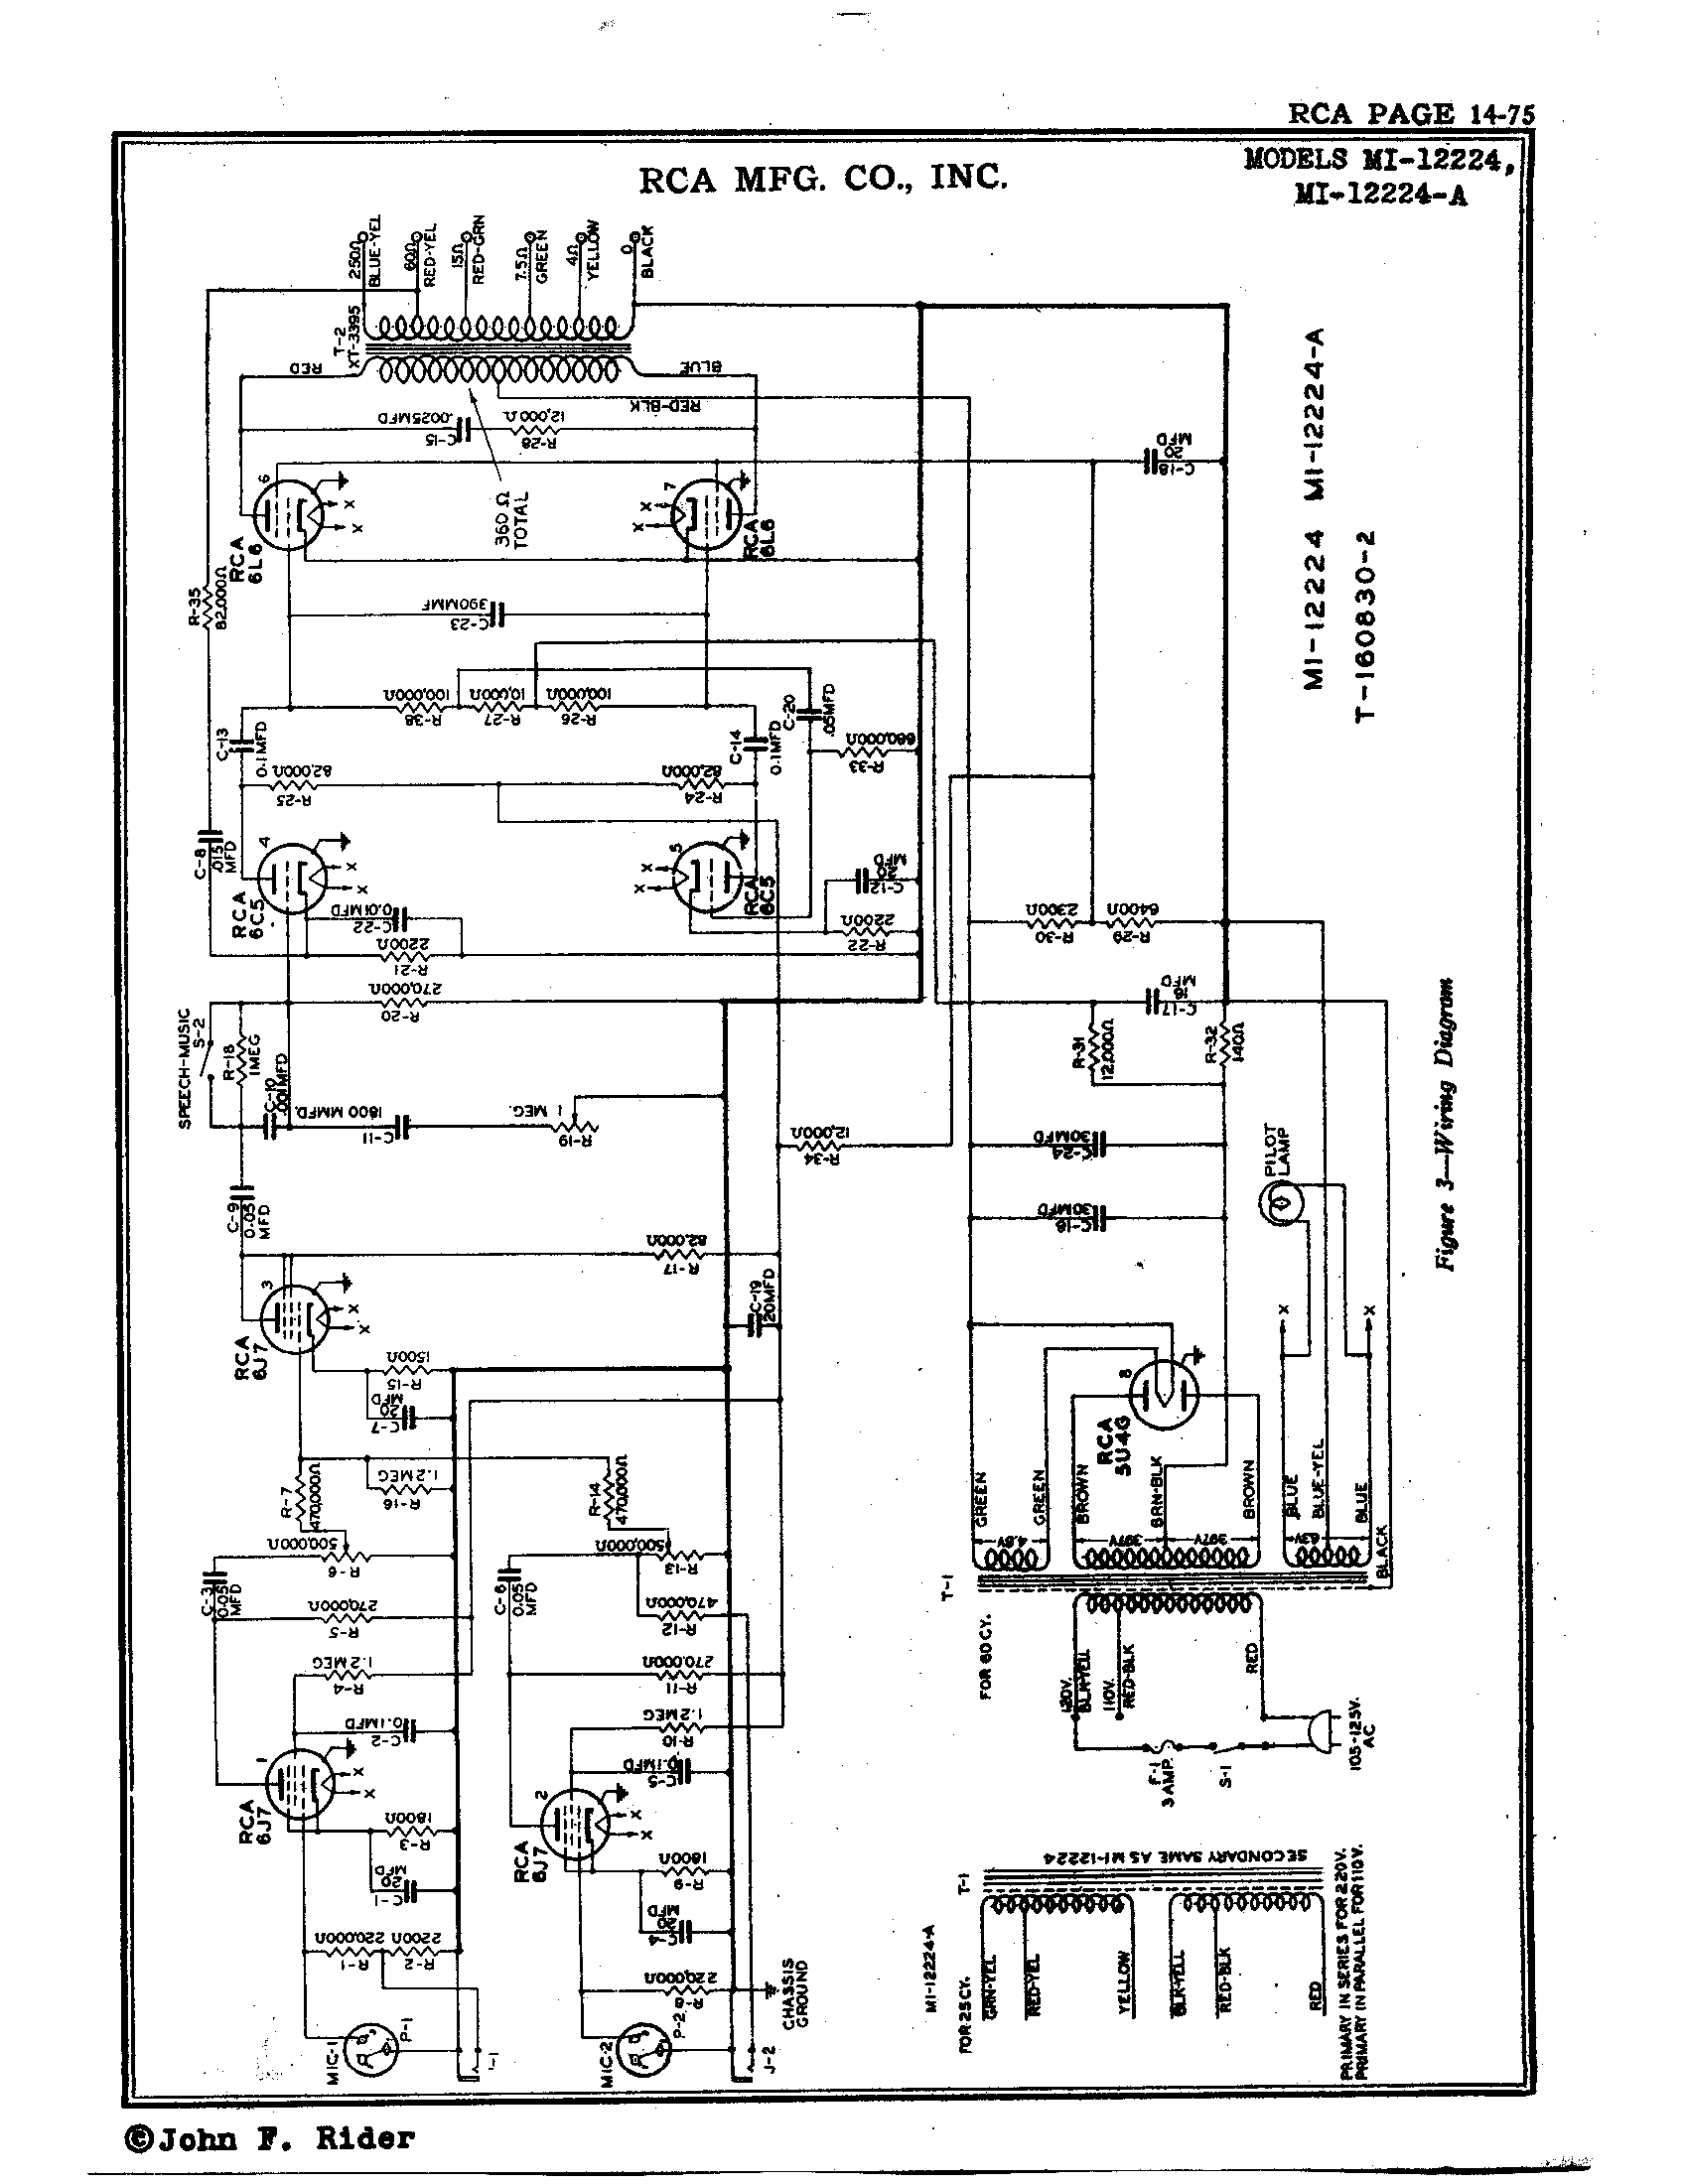 RCA Victor Co., Inc. MI-12224 Schematic on ic schematic diagram, simple schematic diagram, ups battery diagram, layout diagram, template diagram, a schematic drawing, as is to be diagram, a schematic circuit, circuit diagram,